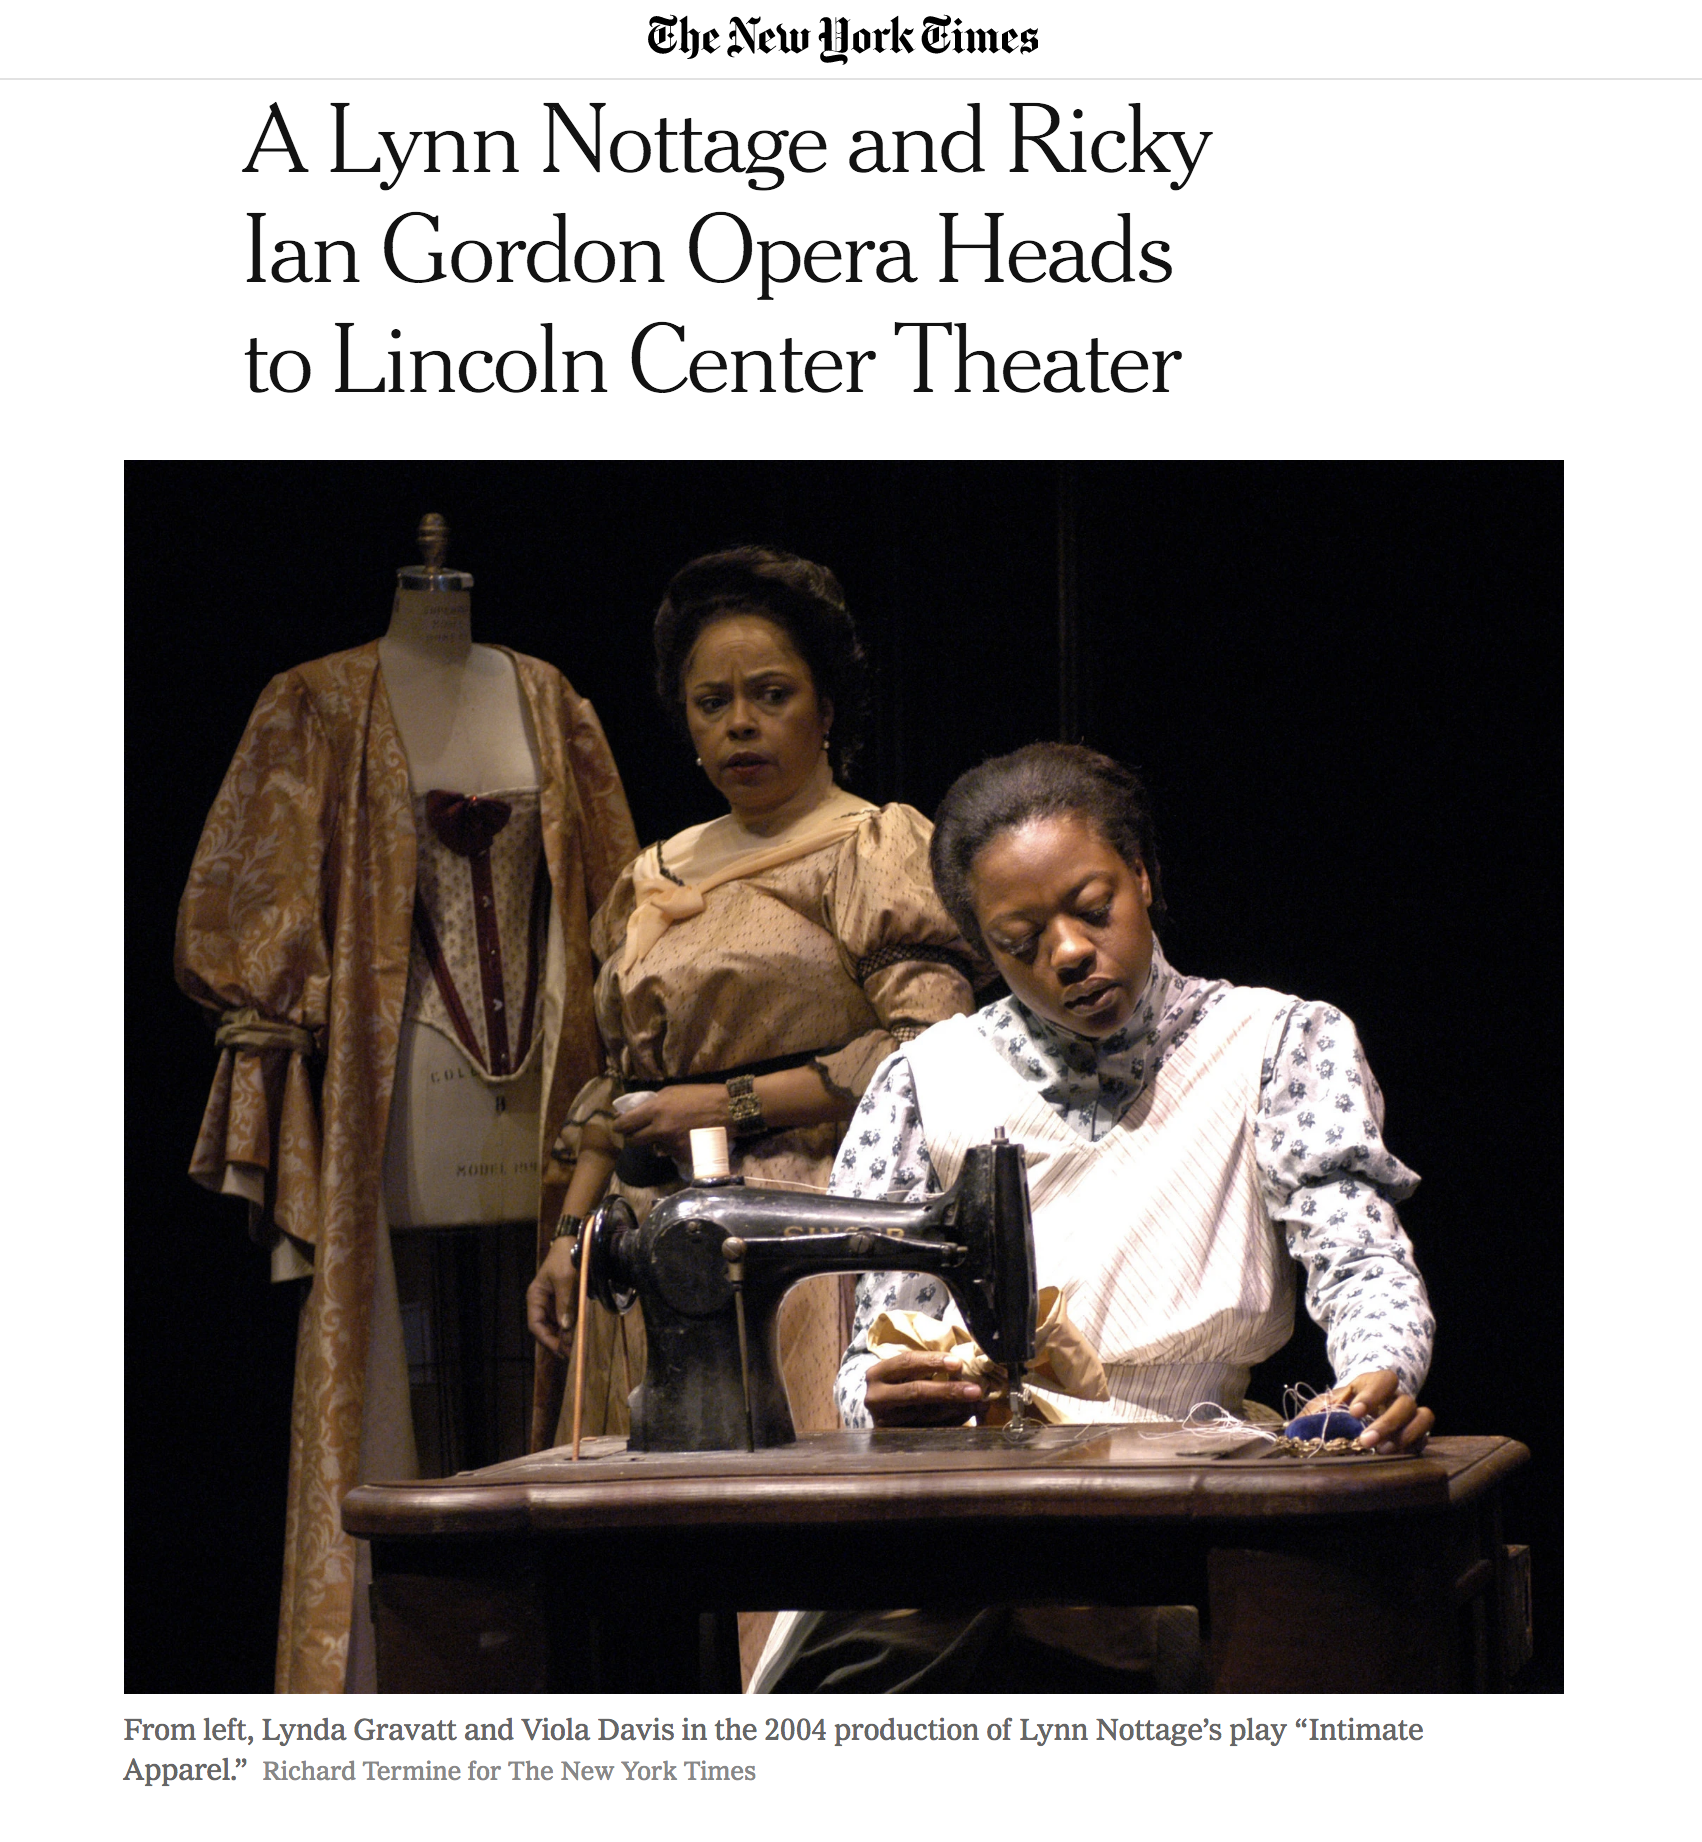 "New York Times announcement article photo. A Lynn Nottage and Ricky Ian Gordon Opera Heads to Lincoln Center Theater. From left, Lynda Gravatt and Viola Davis in the 2004 production of Lynn Nottage's play ""Intimate Apparel."" Richard Termine for NYT"